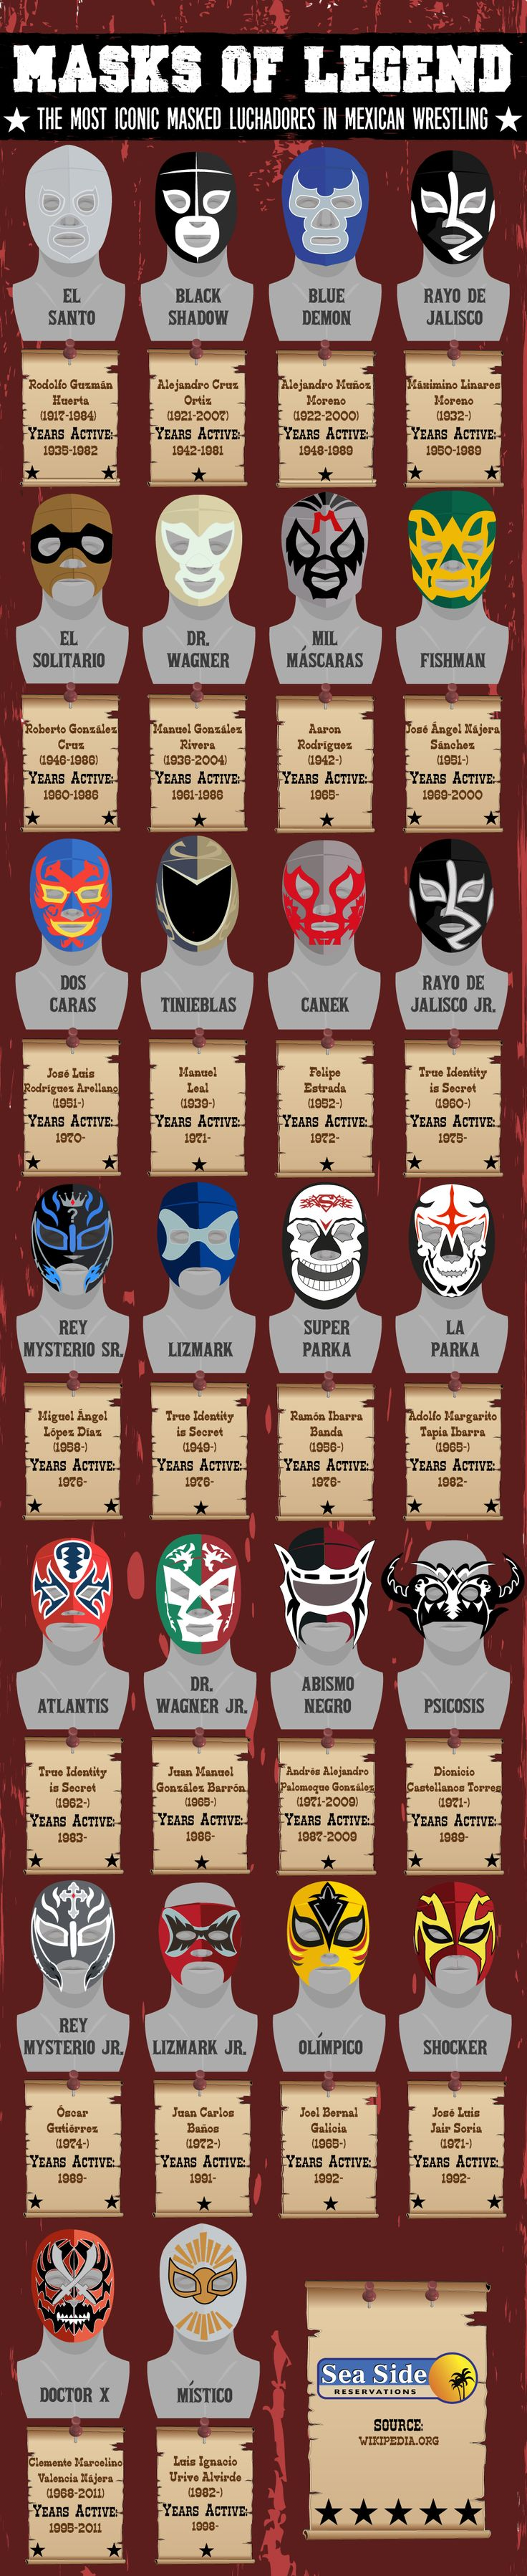 Masks of Legend: The Most Iconic Masked Luchadores in Mexican Wrestling #infographic #Wrestling #Entertainment #Travel